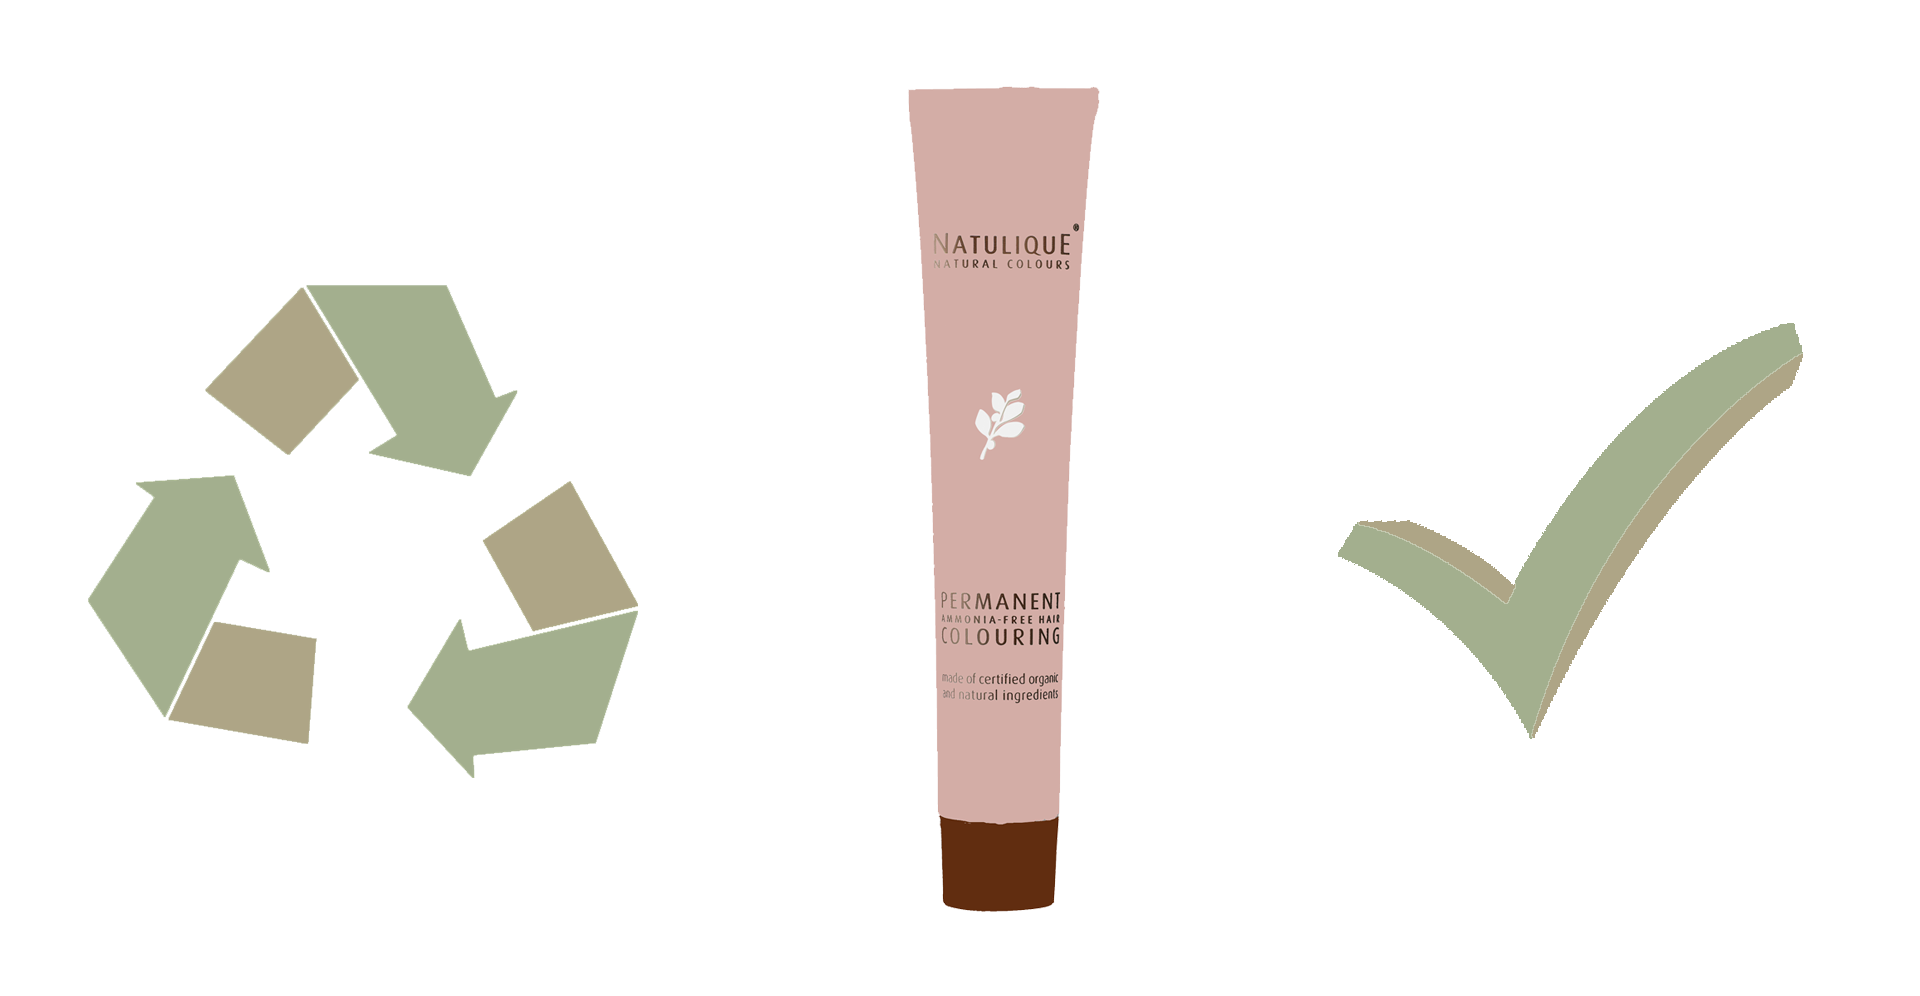 Natulique pink recyclable tube product